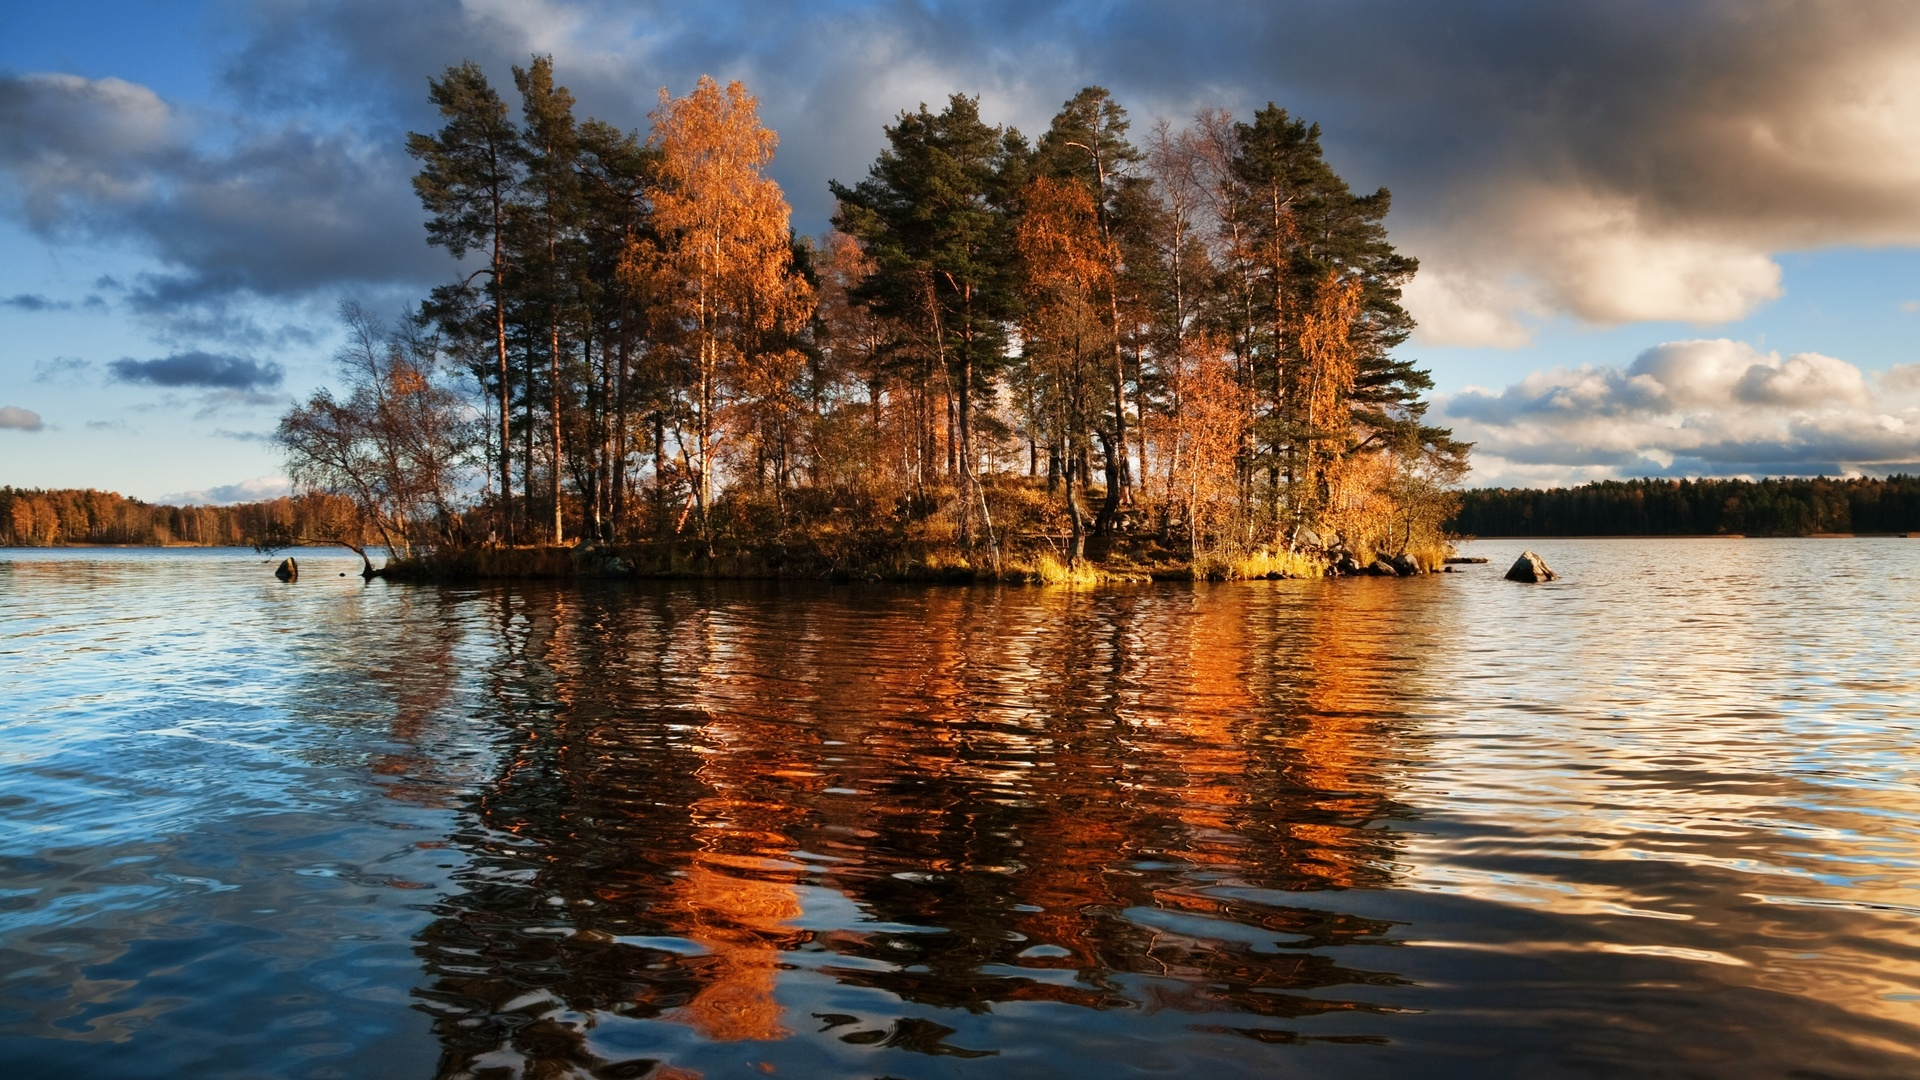 озеро, остров, vuoksa lake, leningrad region, priozersky district, деревья, природа